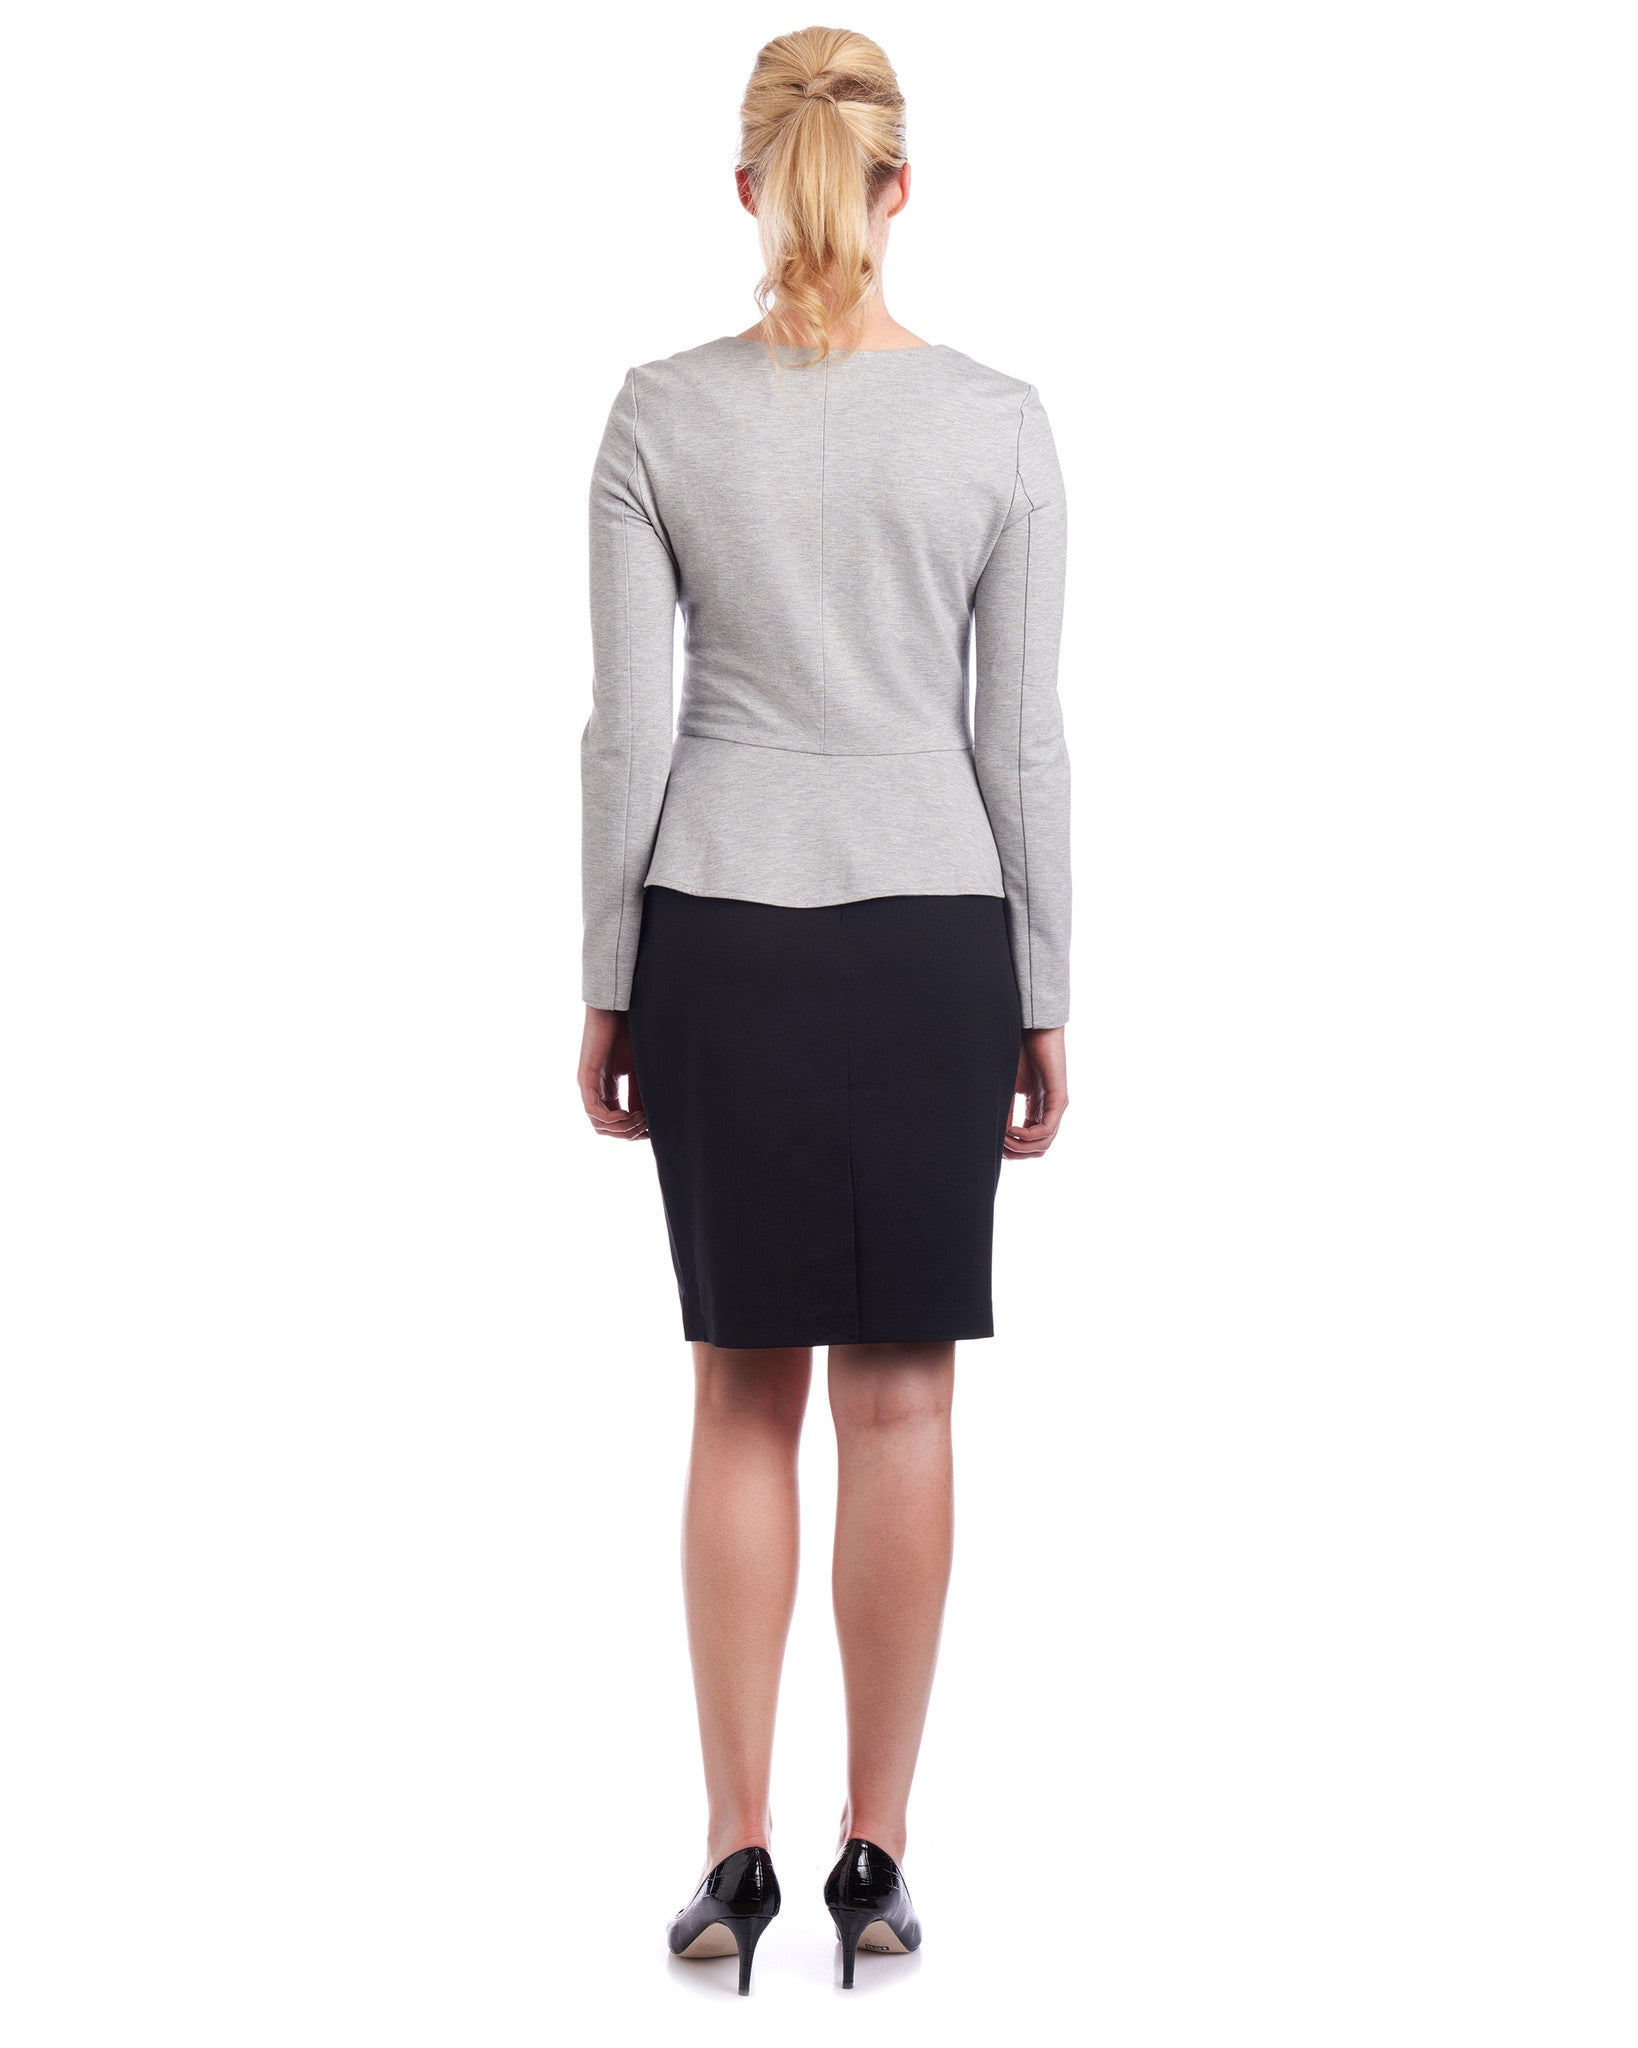 Peplum jacket with stretch for added comfort